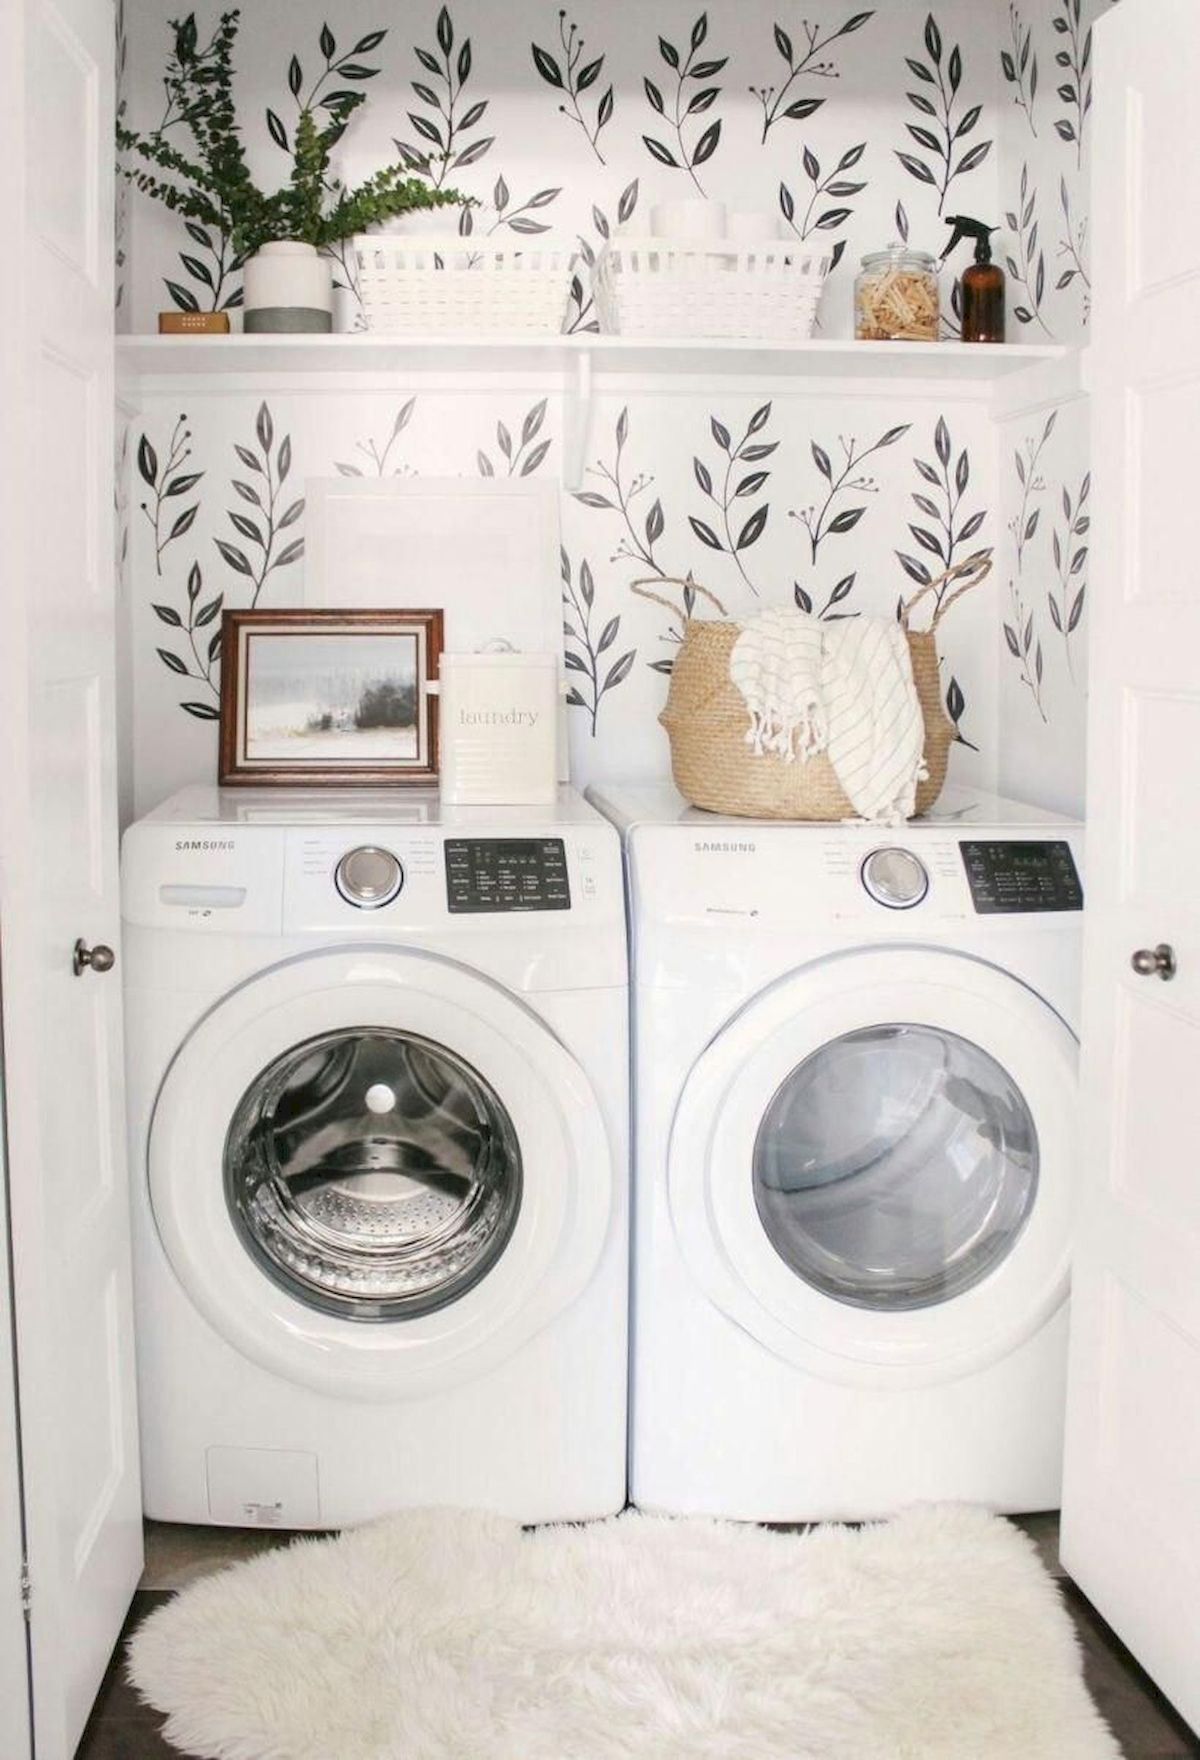 15 Clever Laundry Room Ideas That Are Practical And Space Efficient Tiny Laundry Rooms Laundry Room Inspiration Small Laundry Rooms